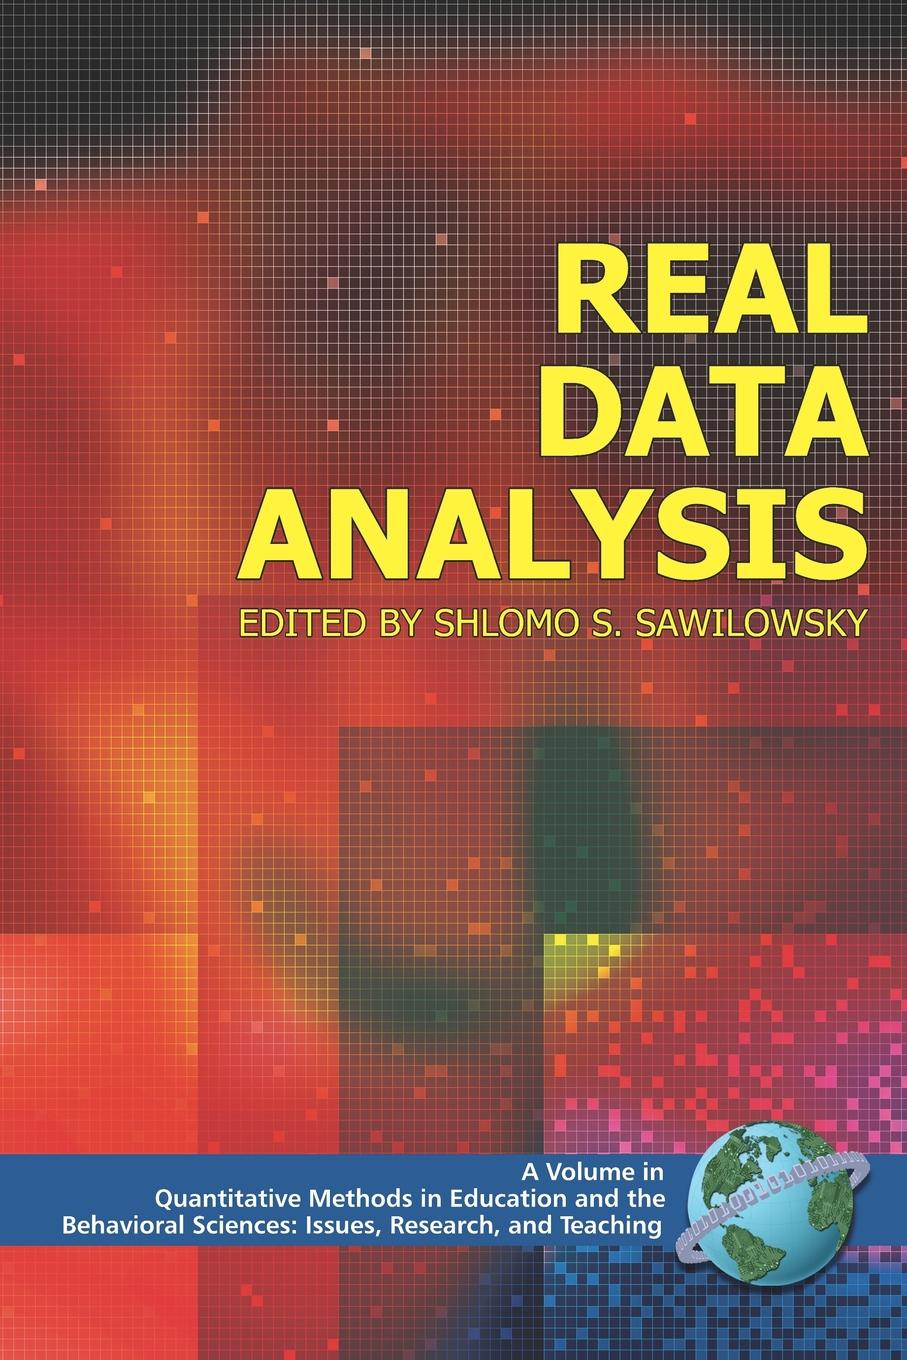 Real Data Analysis (PB) michael albers j introduction to quantitative data analysis in the behavioral and social sciences